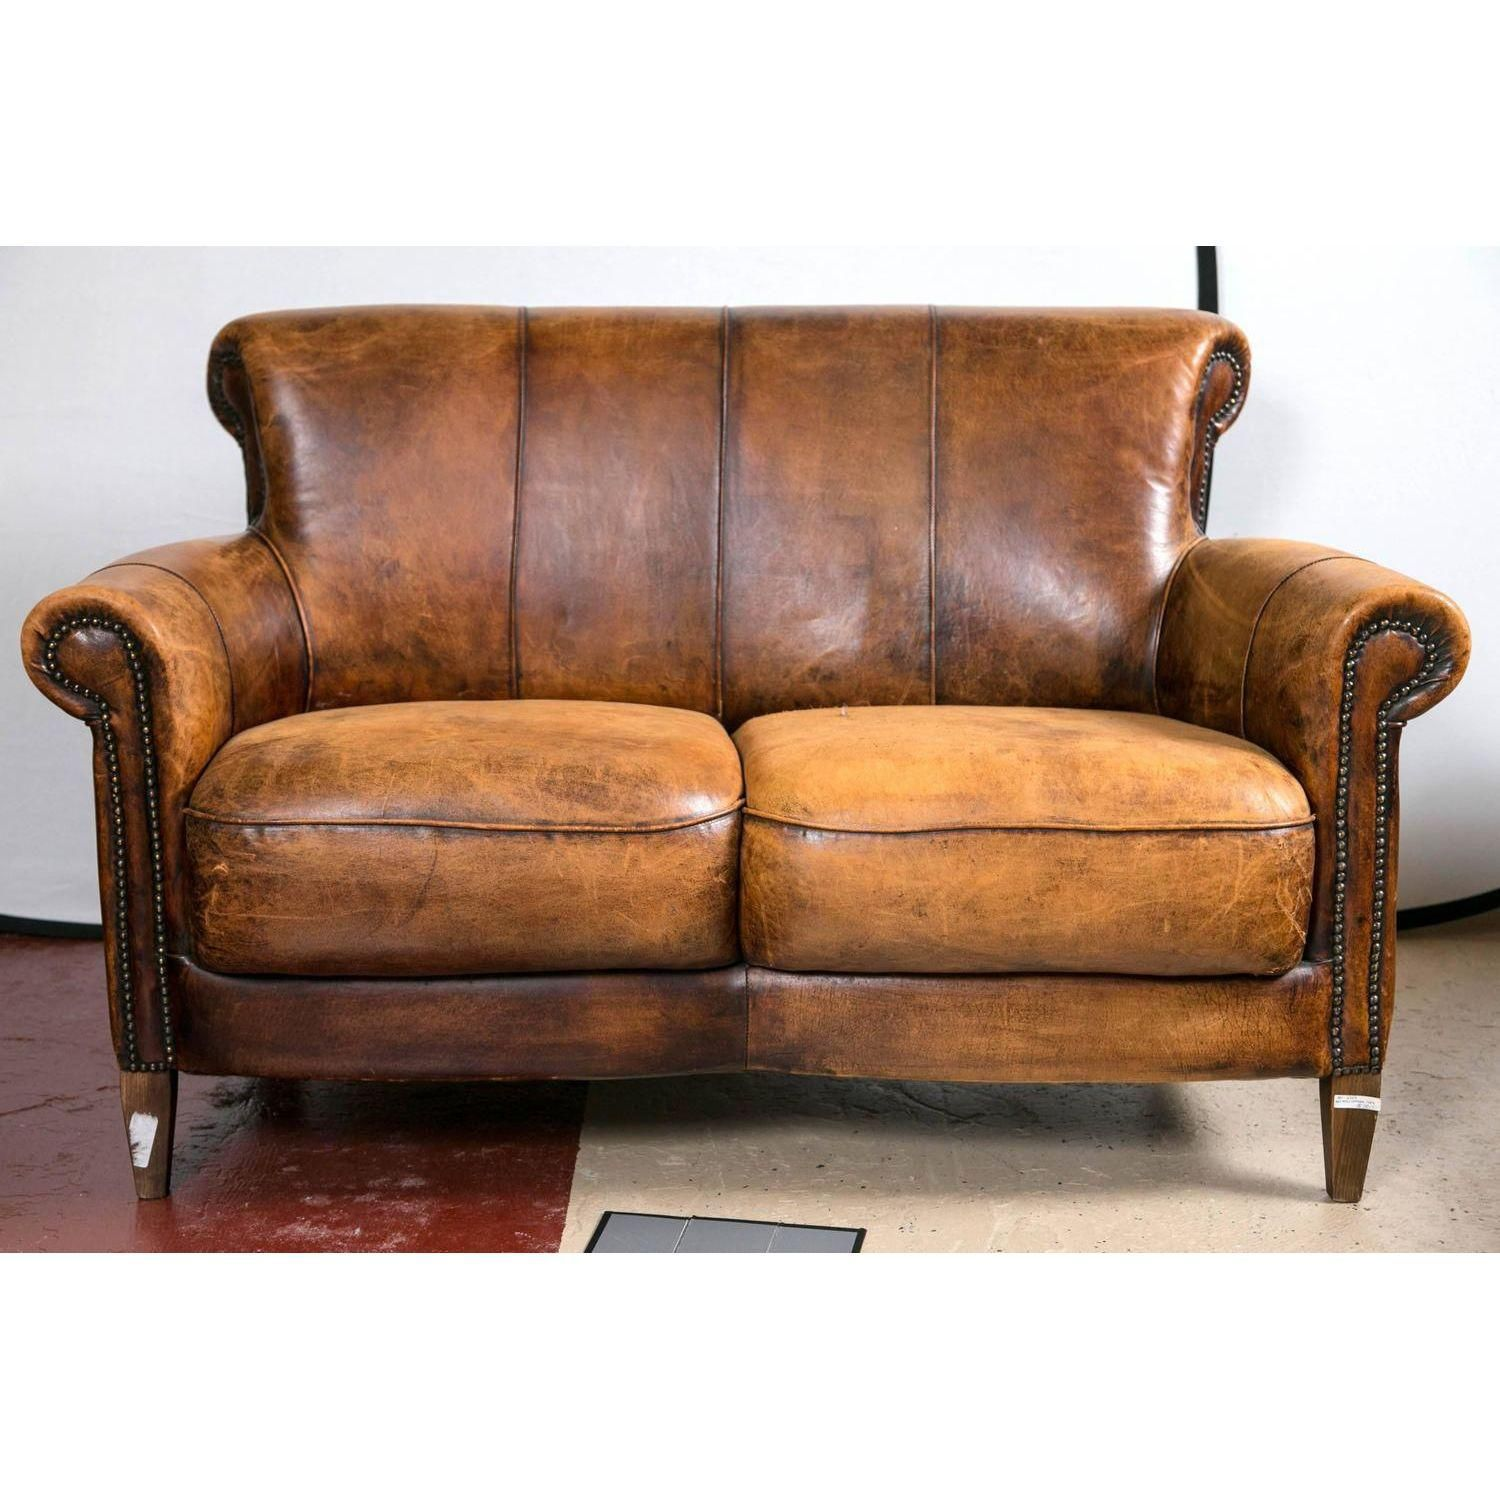 Image Of Vintage French Distressed Art Deco Leather Sofa Leather Sofa Art Deco Sofa Vintage Leather Sofa